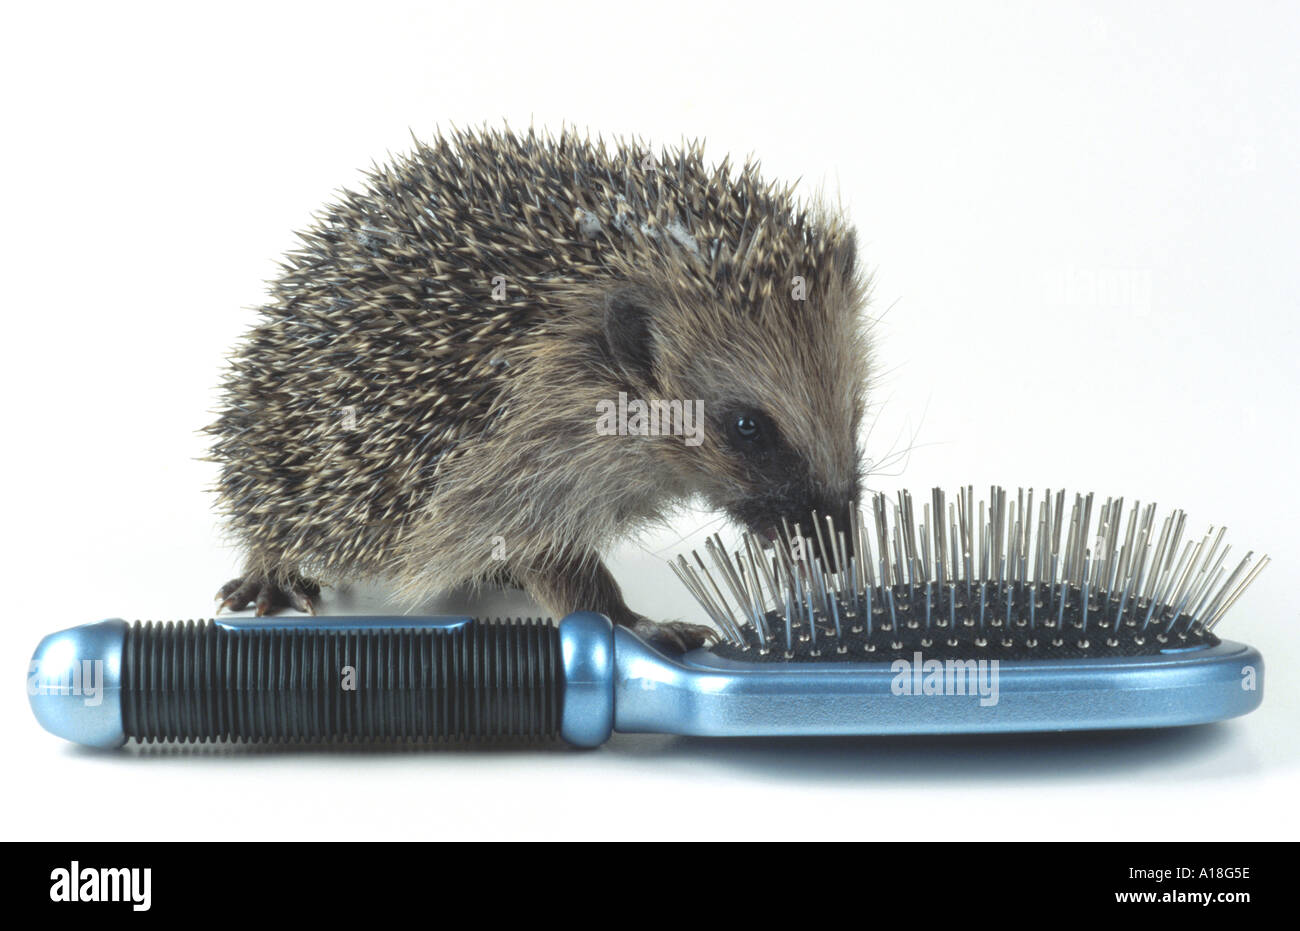 western hedgehog, European hedgehog (Erinaceus europaeus), young sniffing at hairbrush. - Stock Image